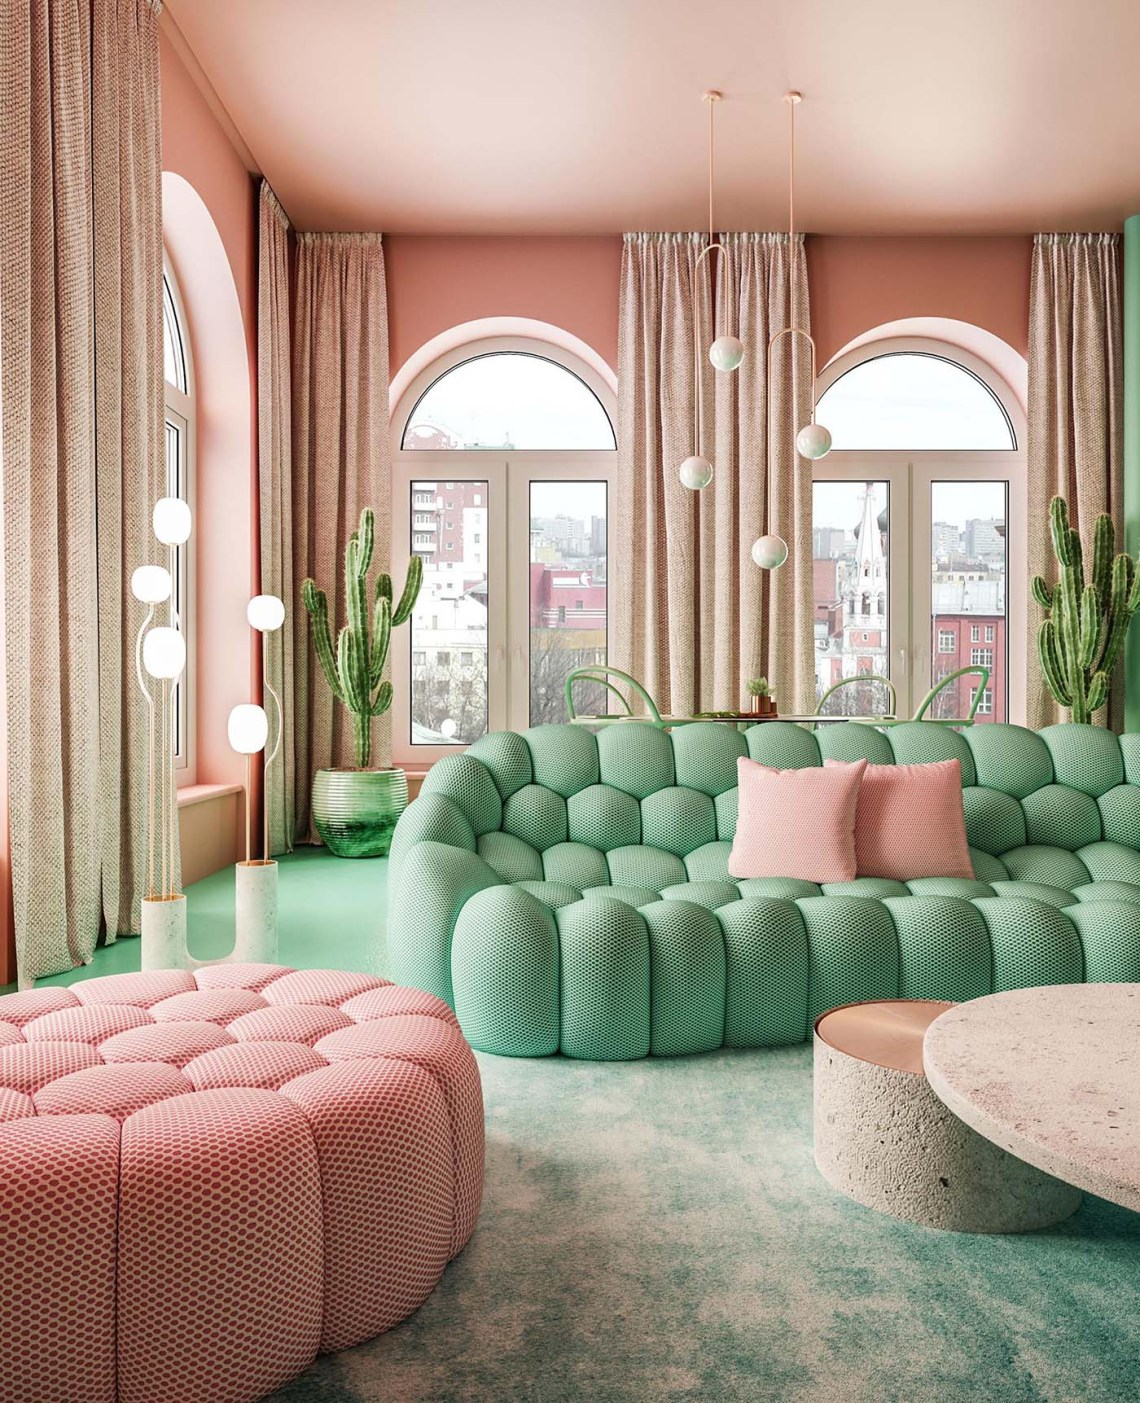 A Pastel Pink And Mint Green Color Palette Creates A Statement Interior For This New York Apartment